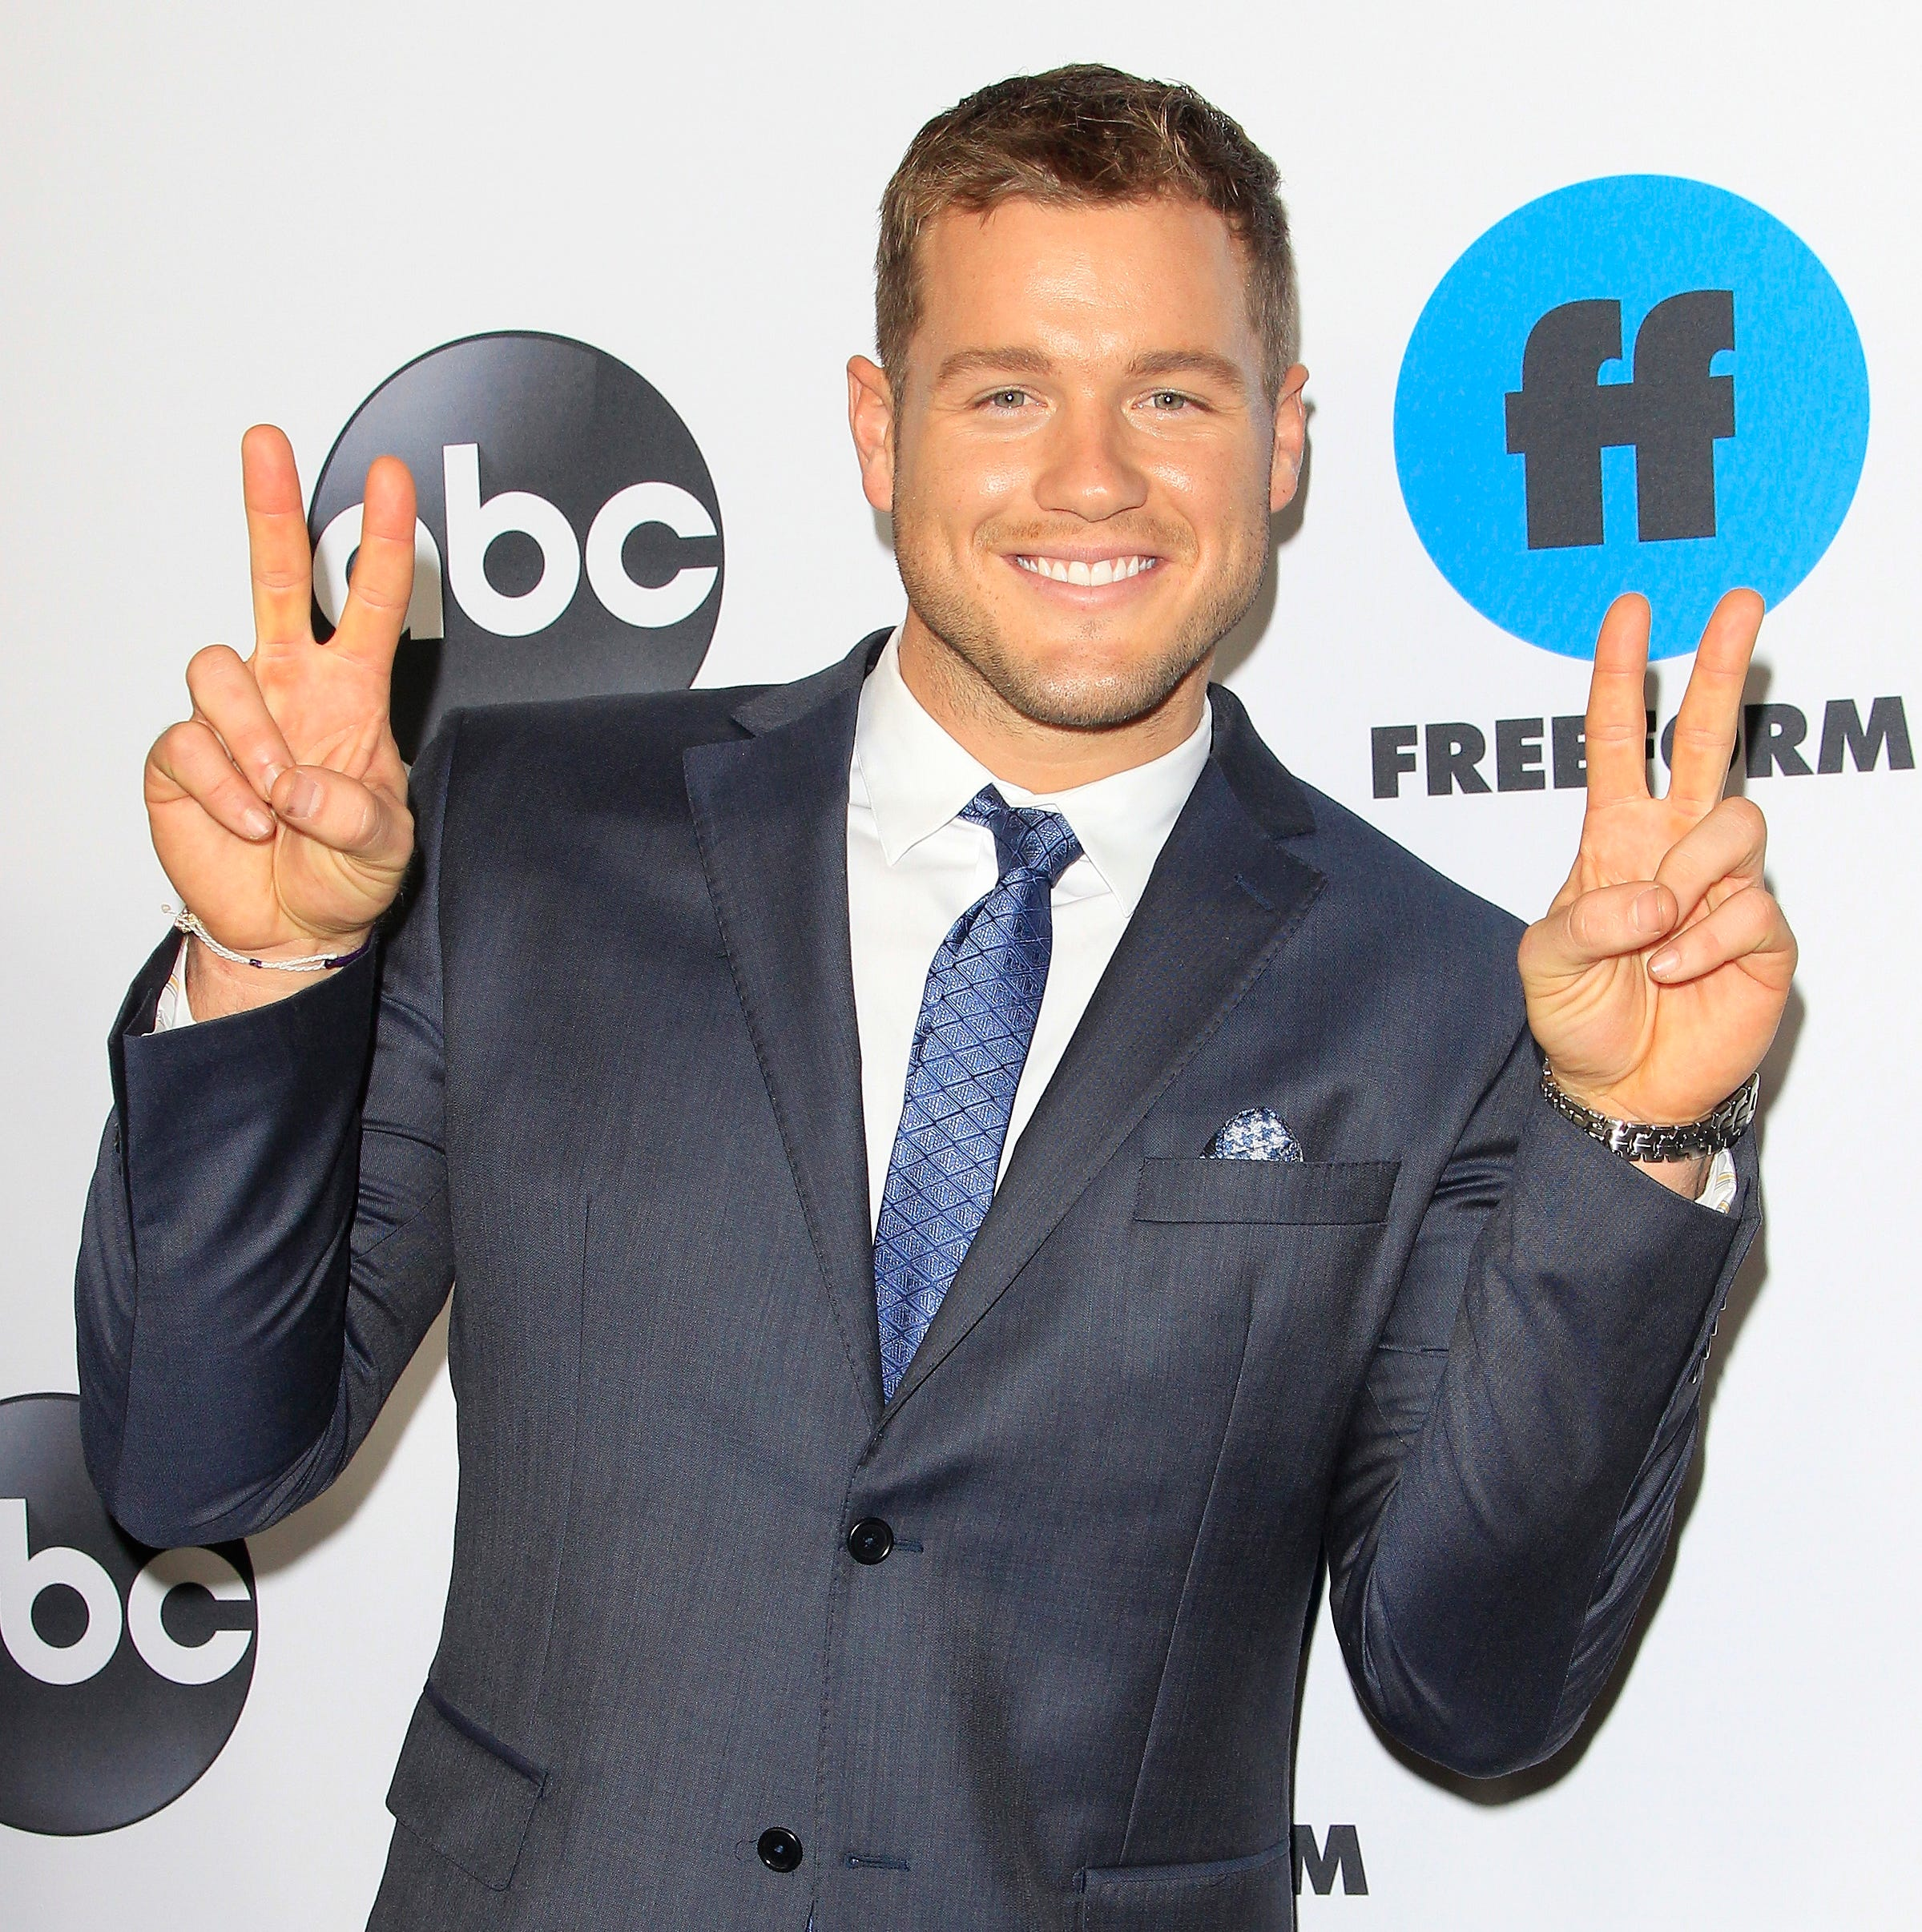 epa07347184 Colton Underwood arrives for the Disney and ABC Television 2019 TCA Winter press tour at The Langham Huntington Hotel and Spa in Pasadena, California, USA, 05 February 2019.  EPA-EFE/NINA PROMMER ORG XMIT: NPX01